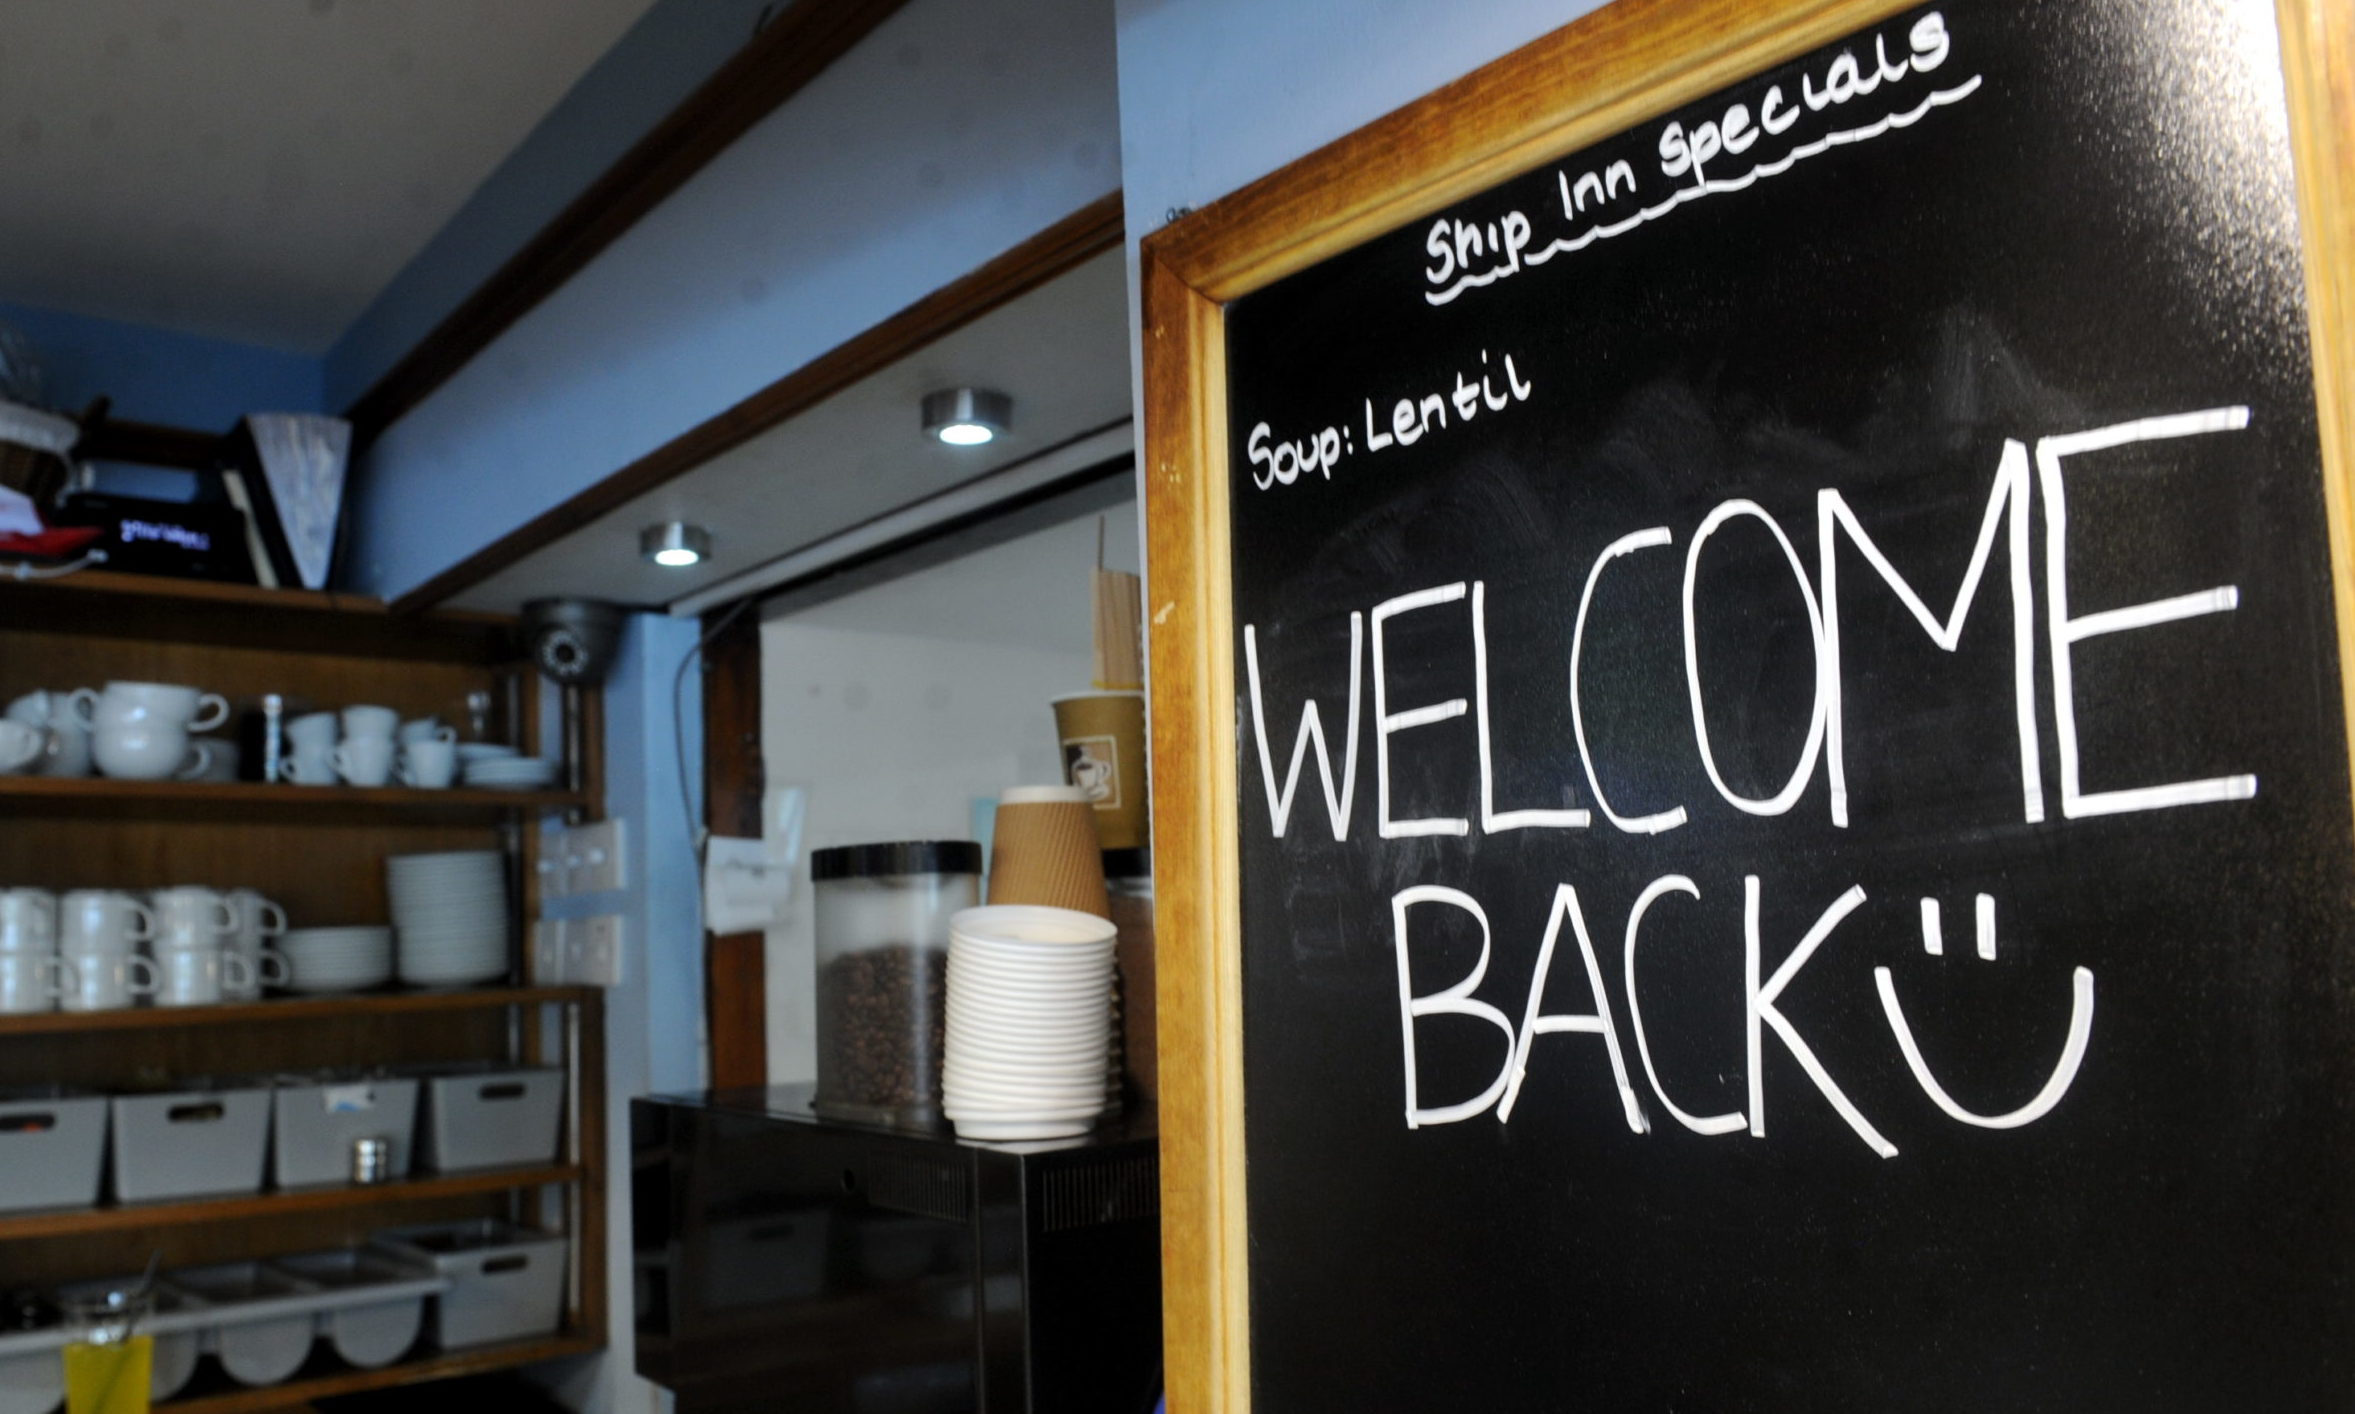 Pubs and restaurants across Scotland have reopened, including Stonehaven's The Ship Inn